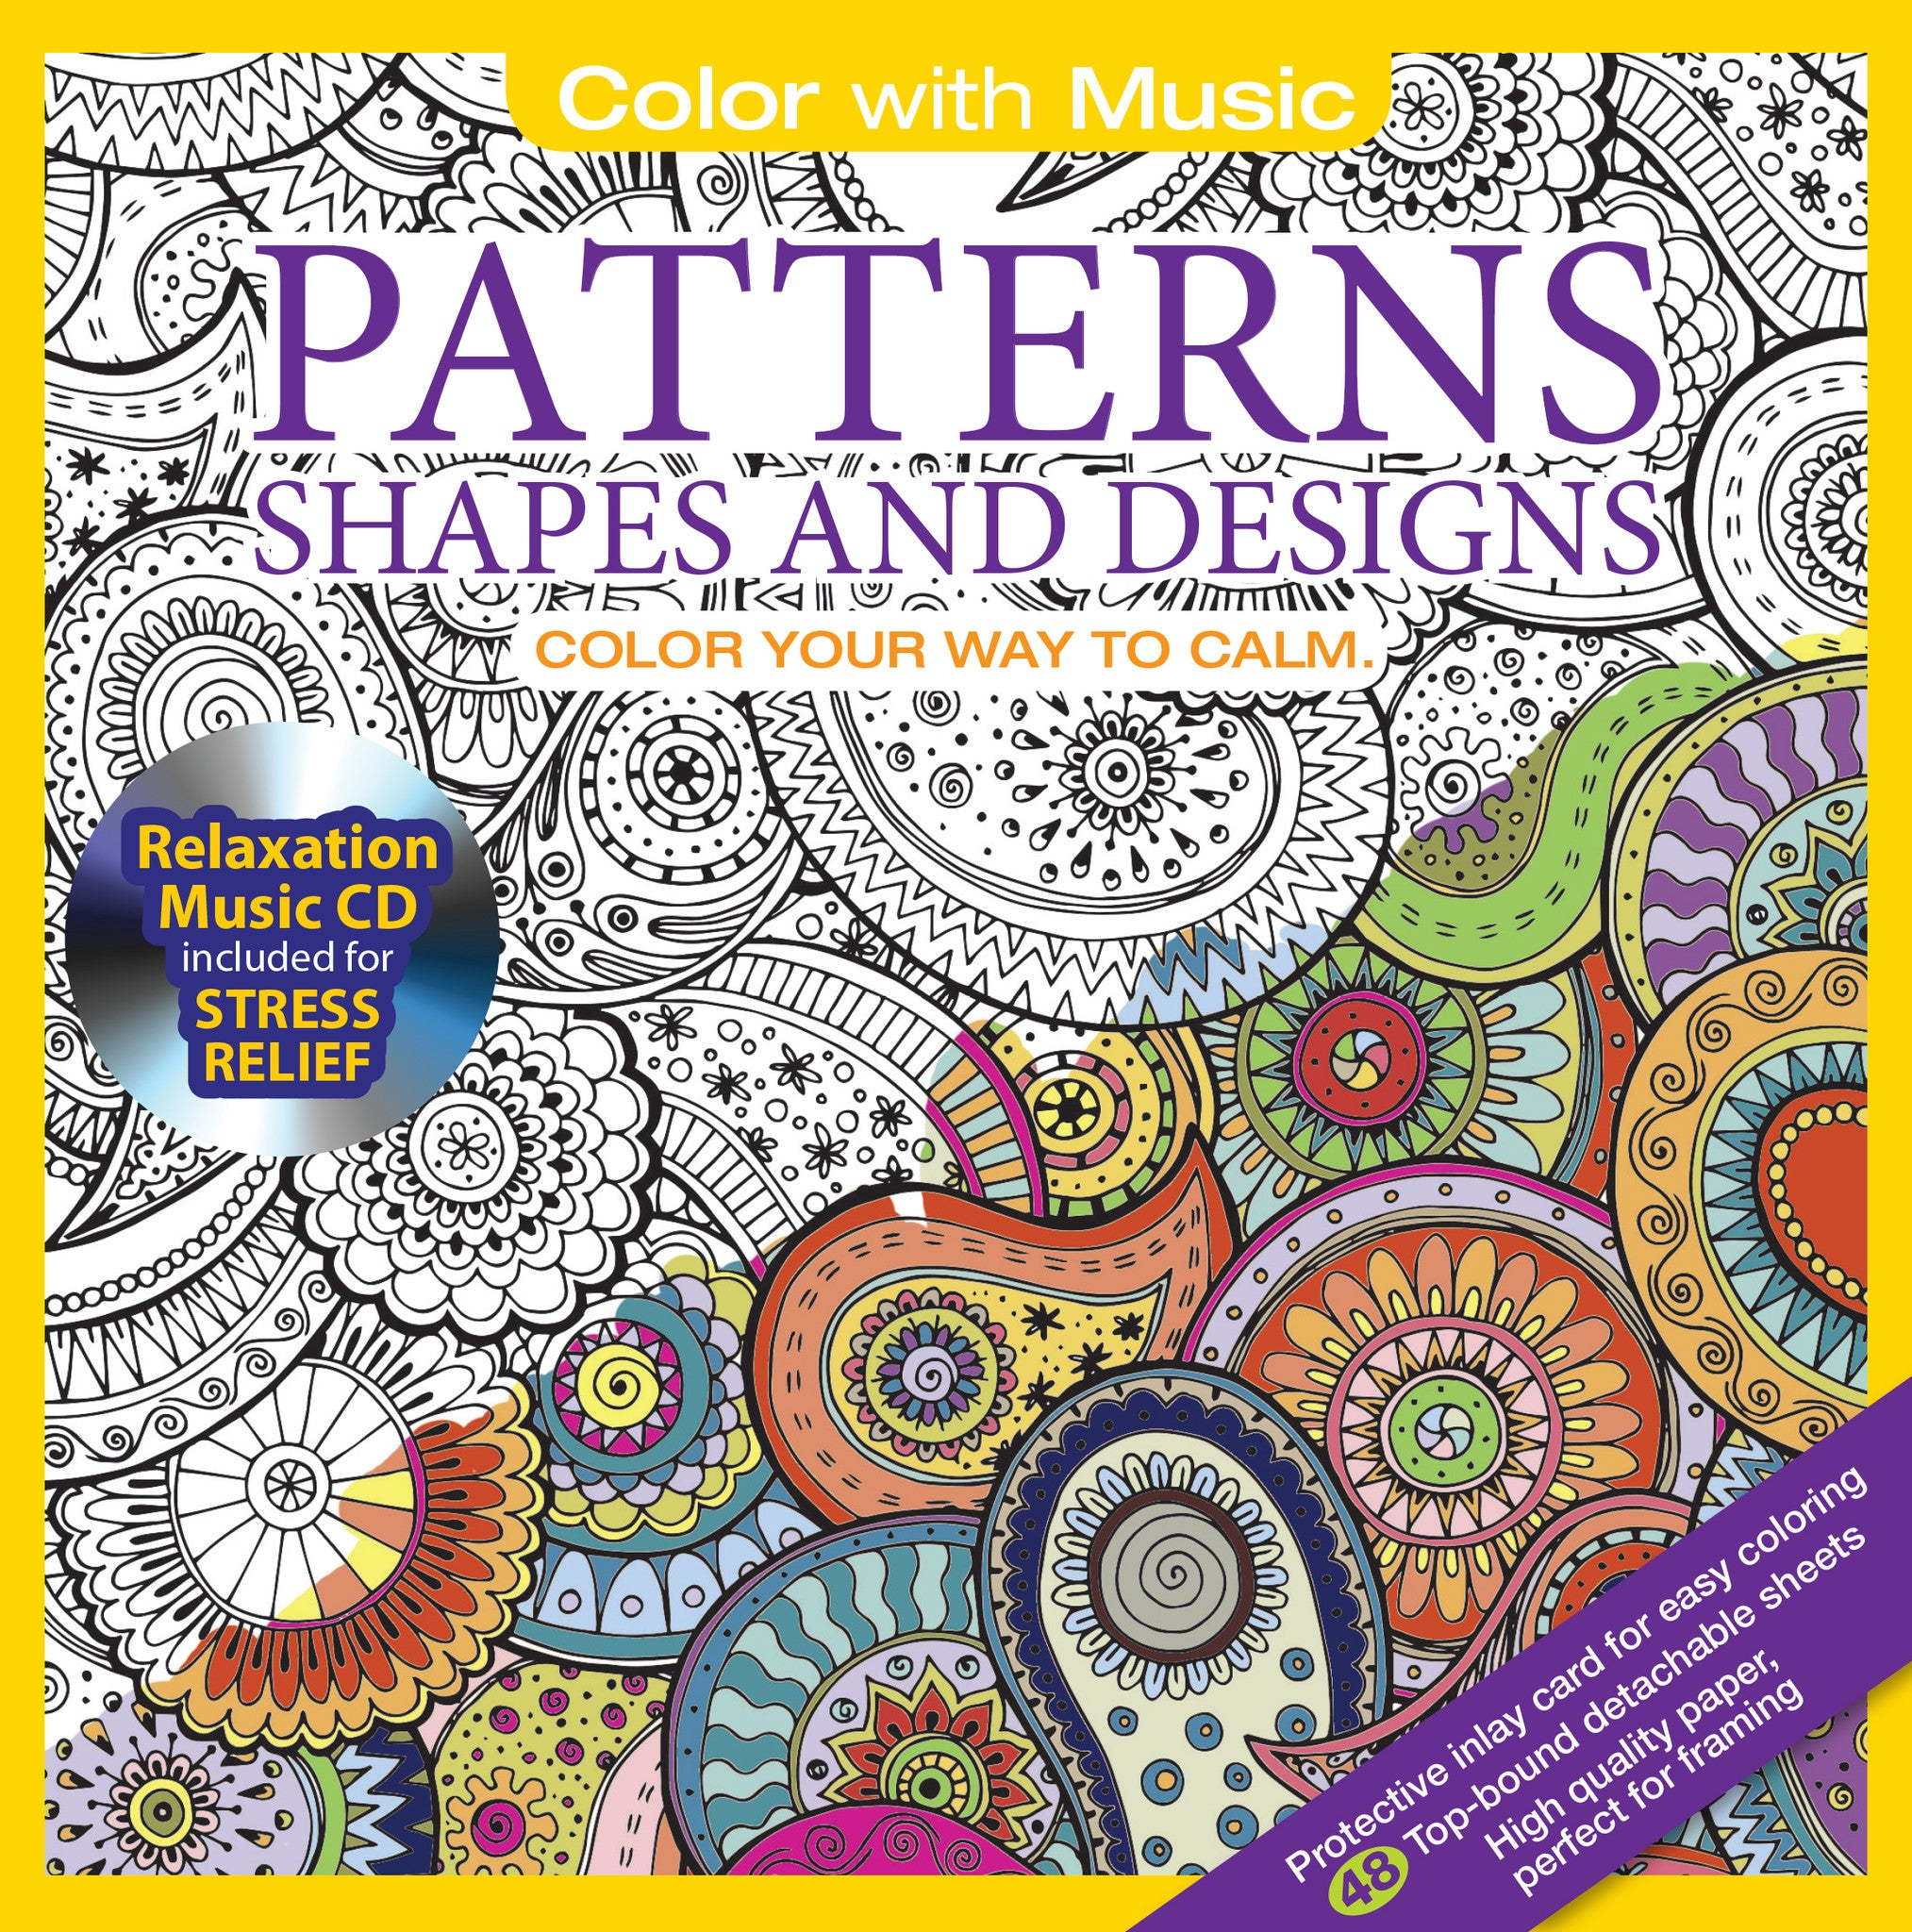 Book Cover Design Pattern : Relaxation music cd coloring books color with